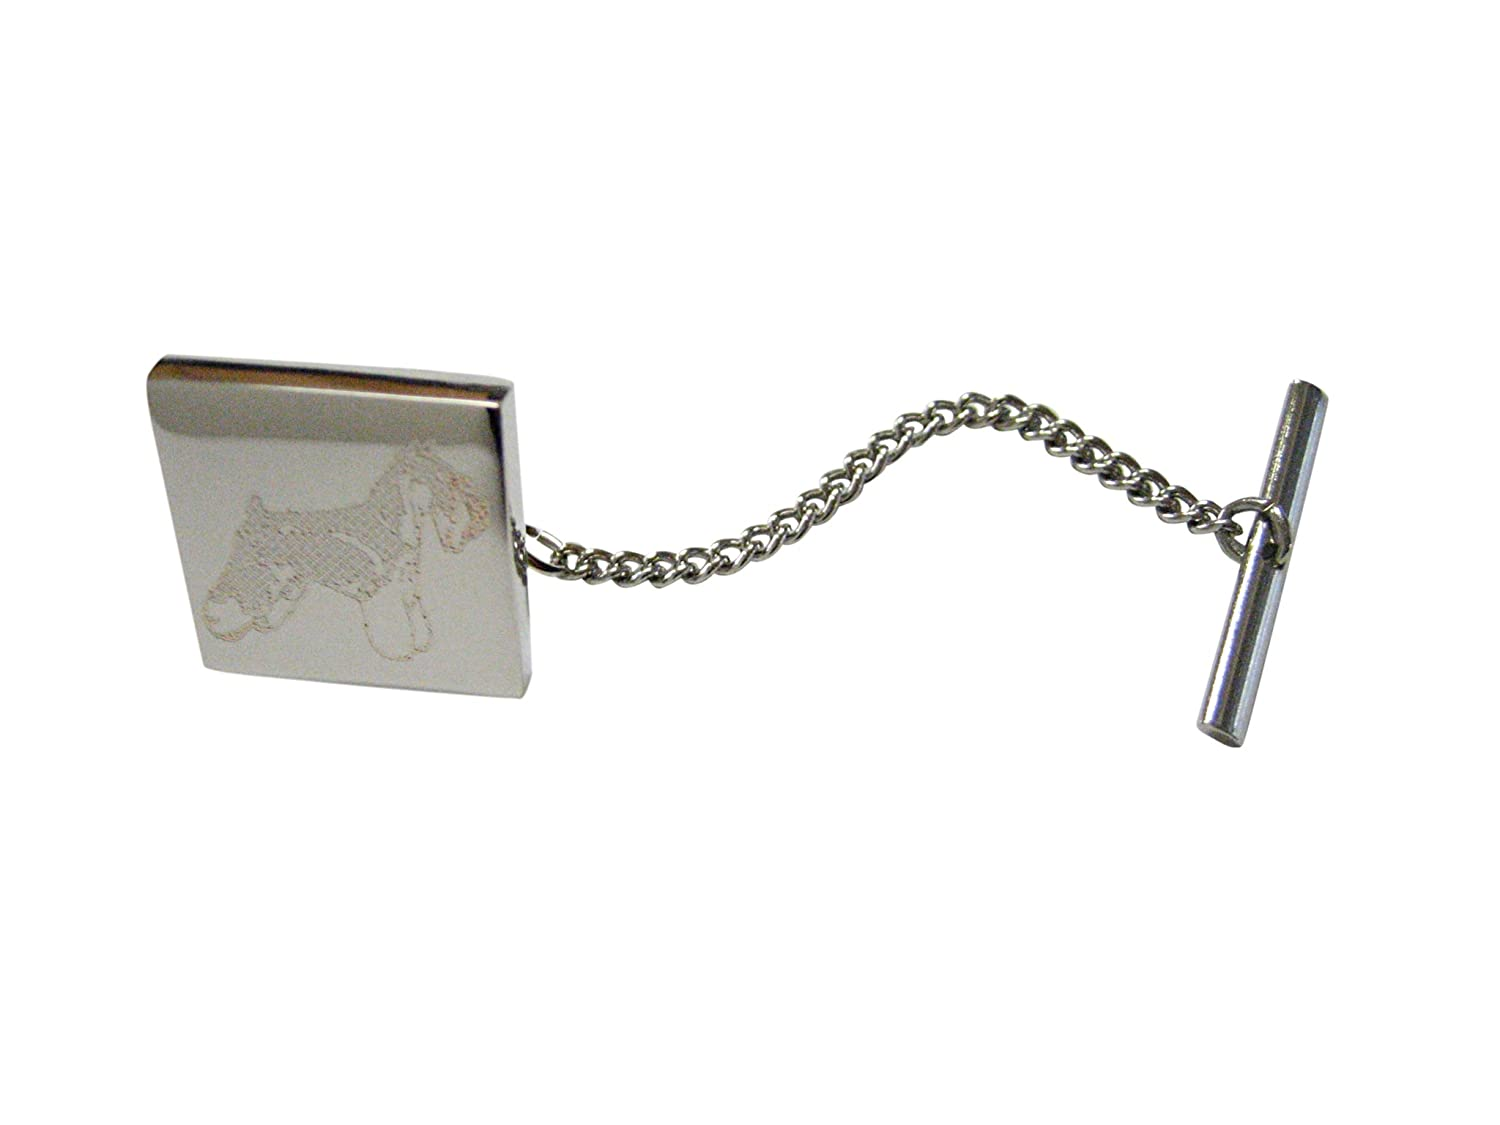 Silver Toned Etched Scottish Terrier Dog Tie Tack